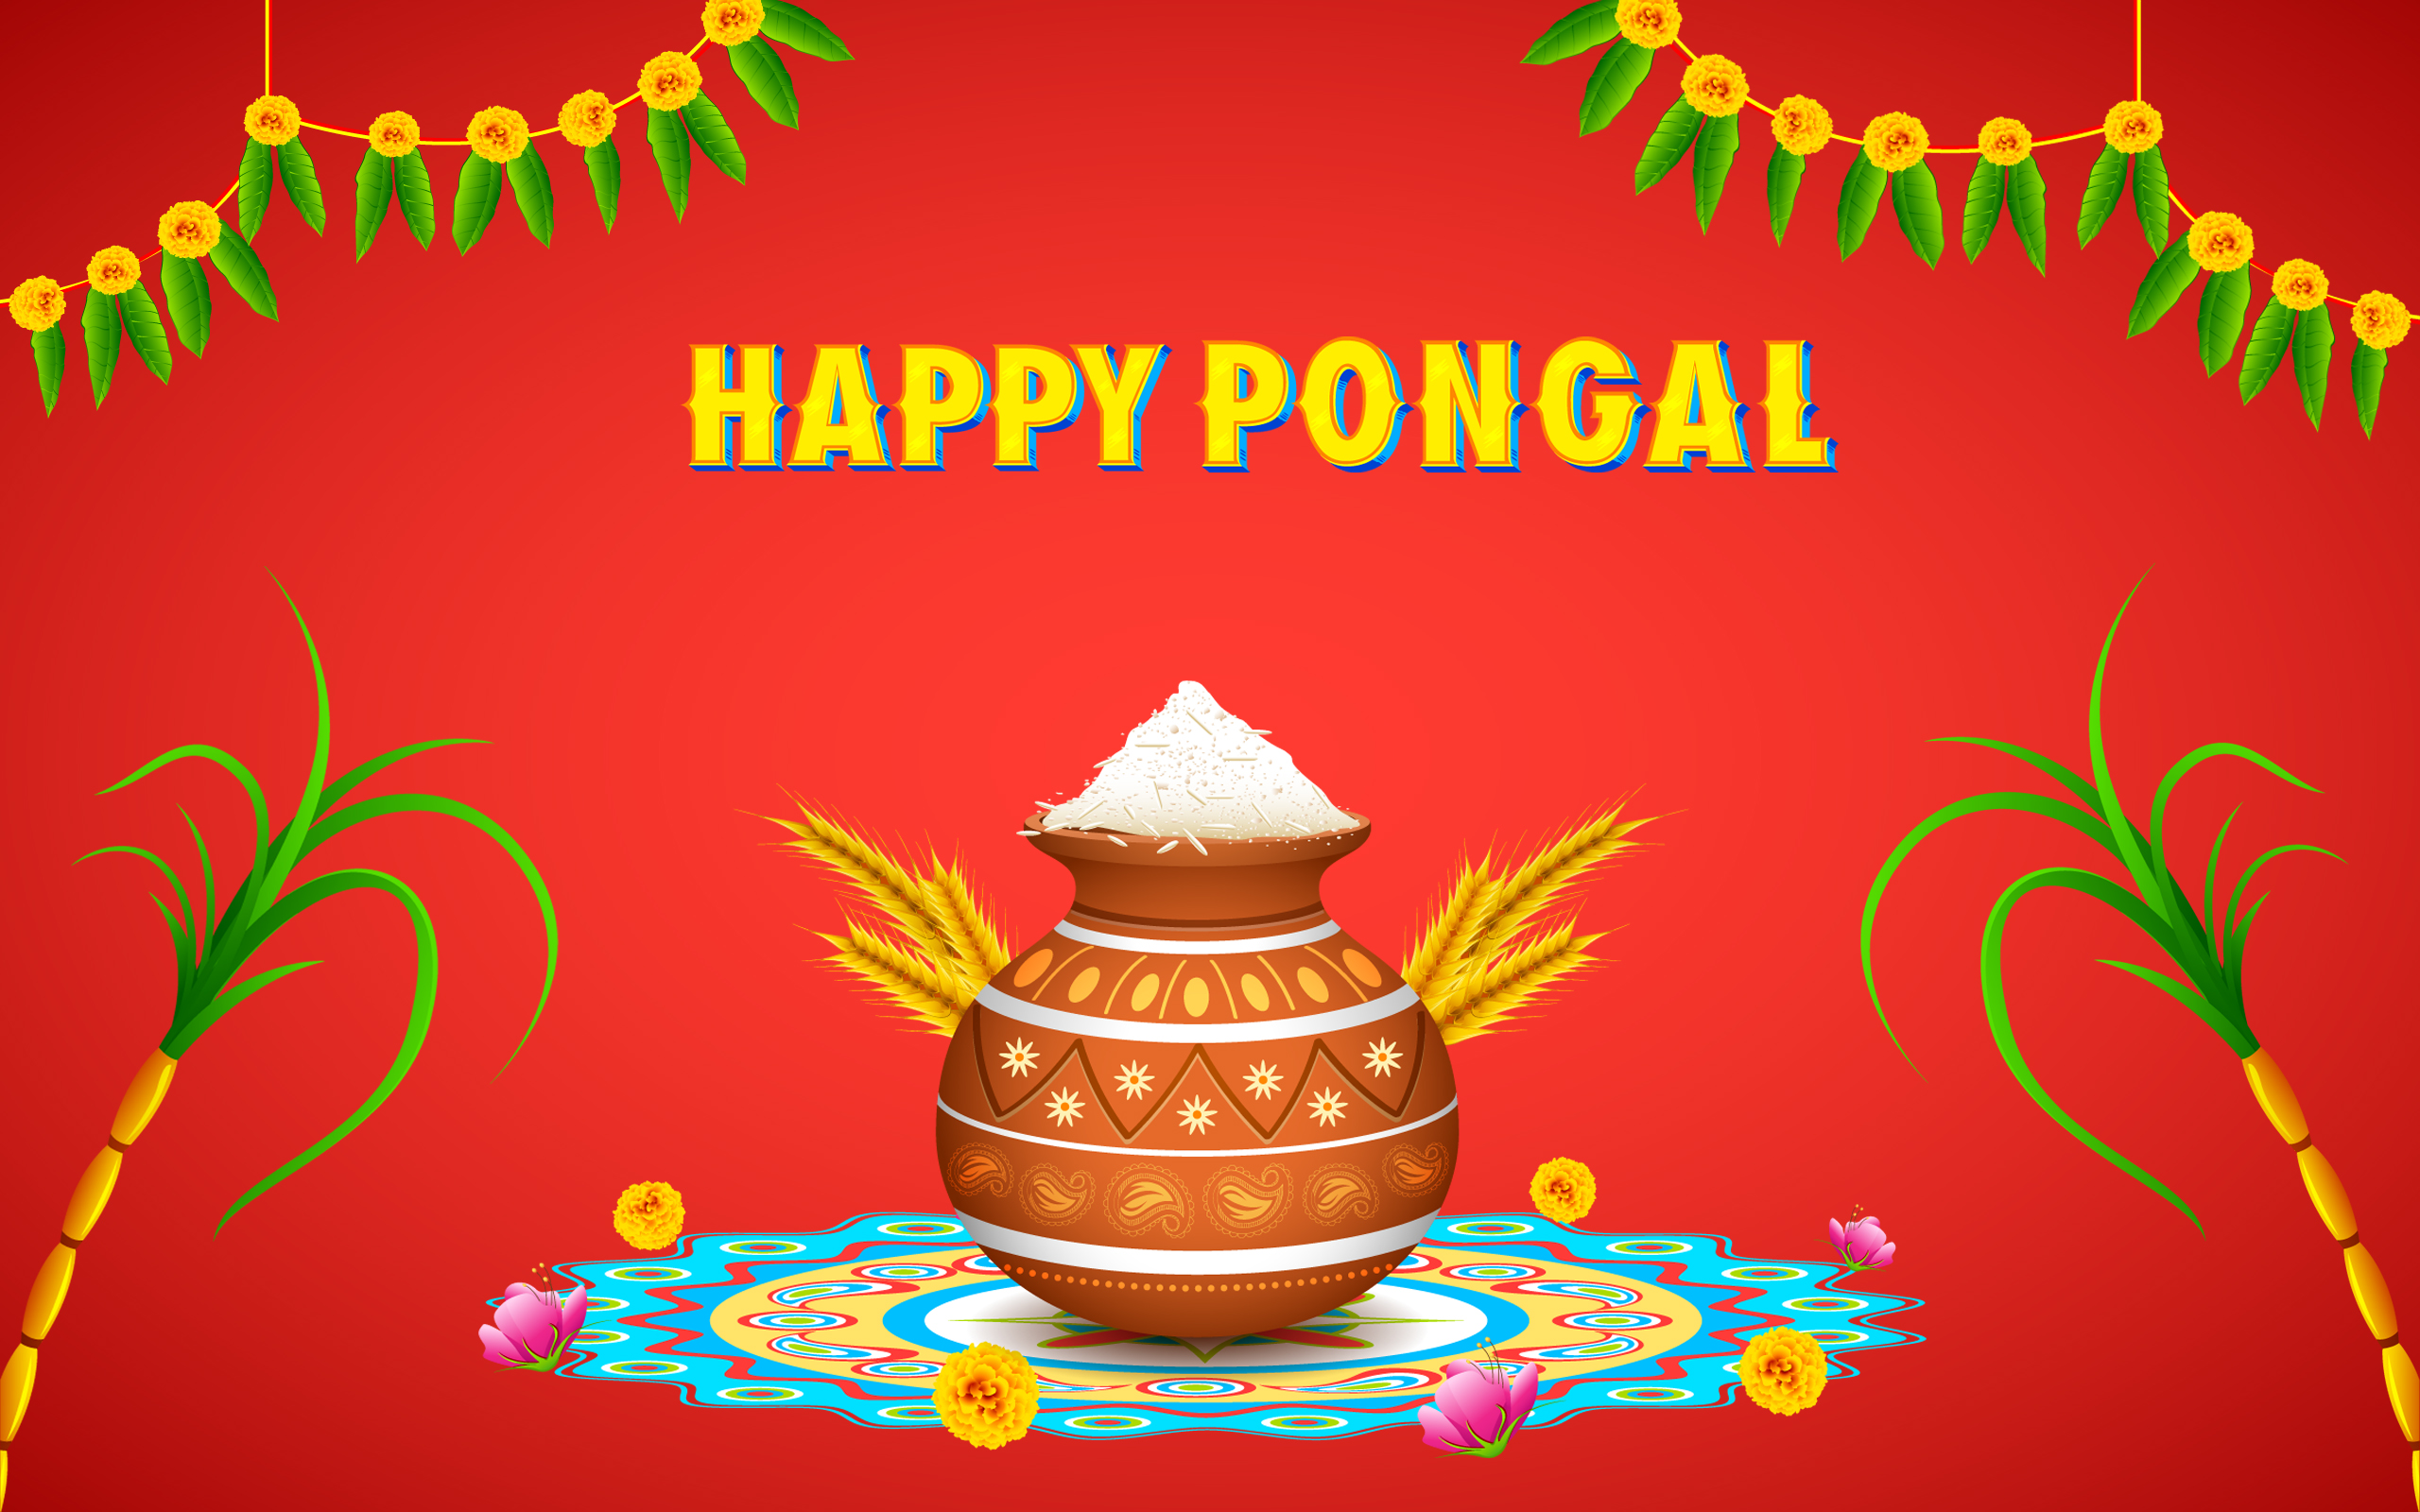 Happy pongal 2018 wishes sms text messages techicy happy pongal 2016 wishes m4hsunfo